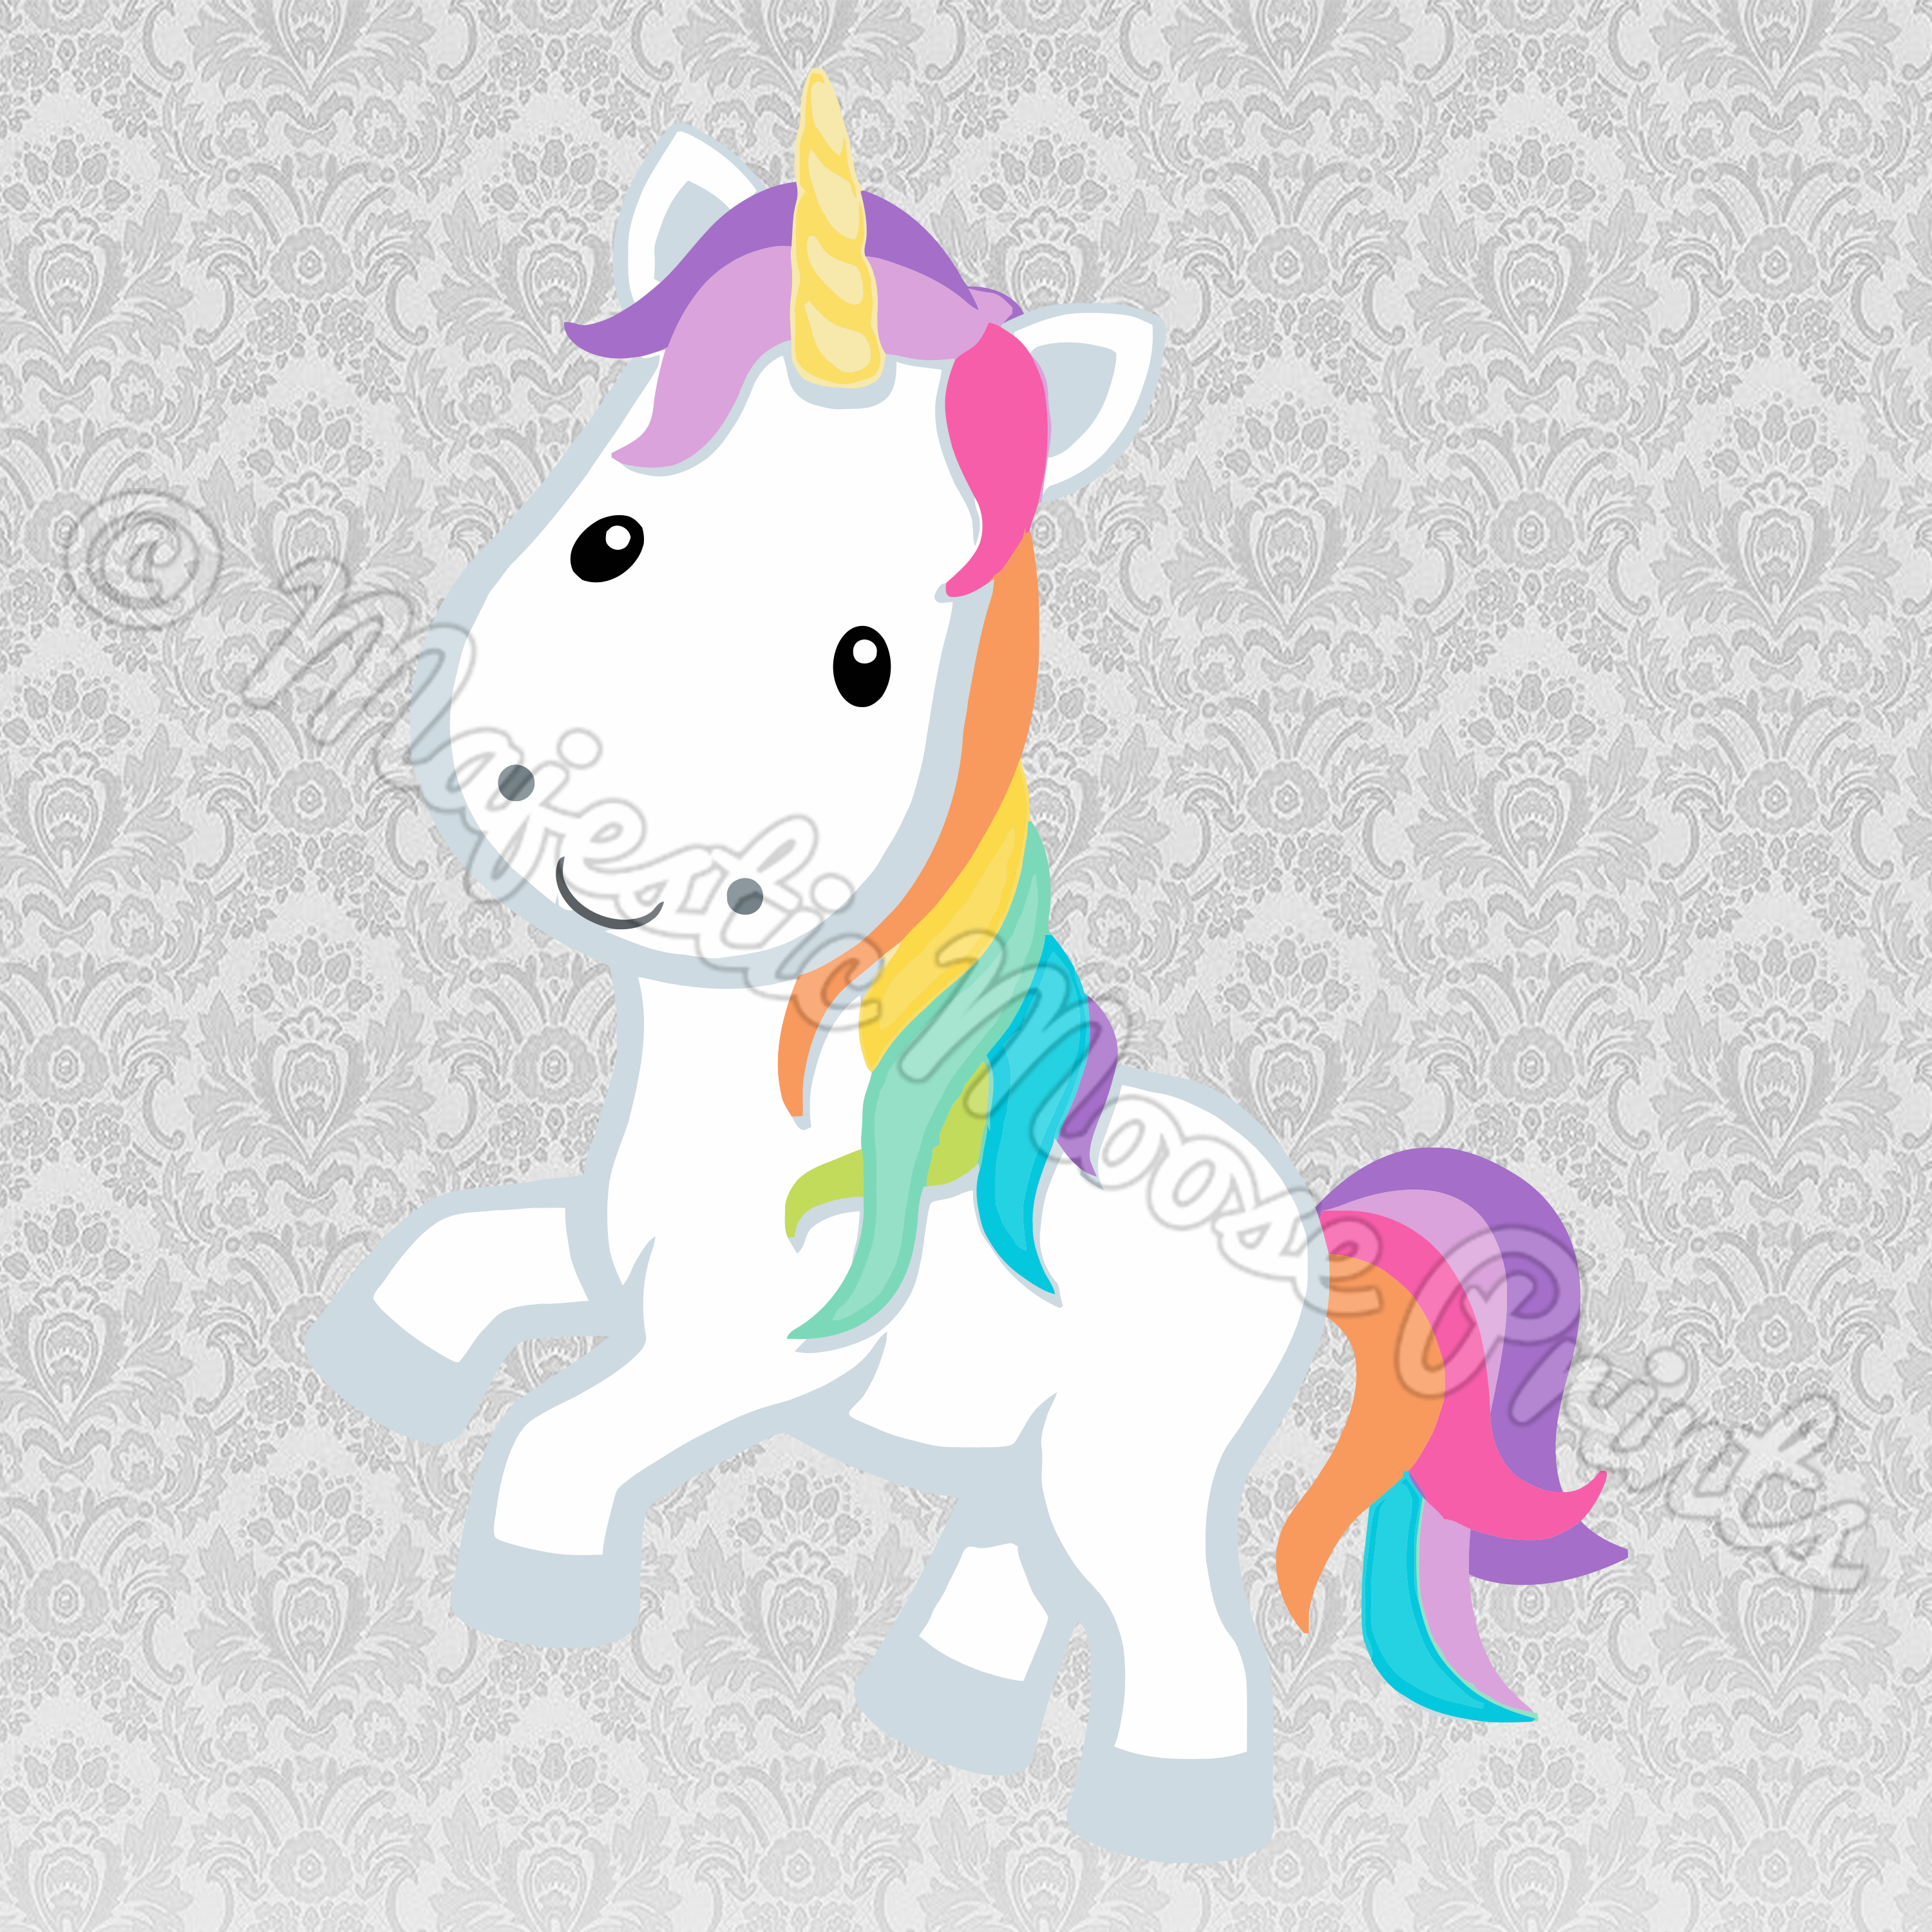 Narwhal clipart svg. Rainbow unicorn files for